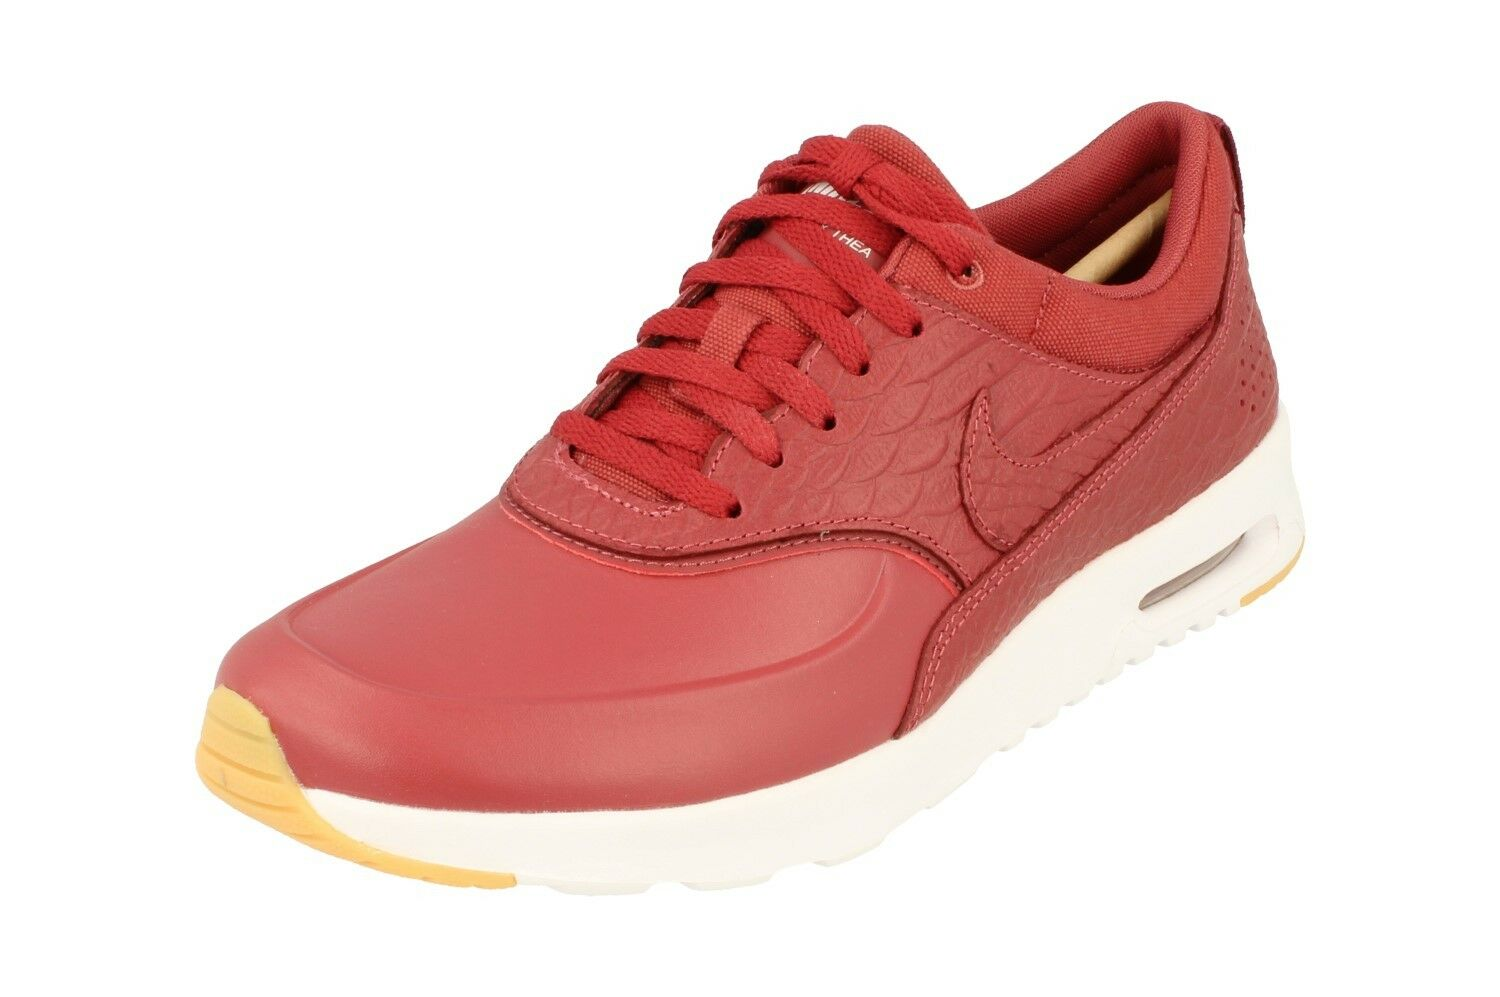 Nike air max thea PRM Femme running chaussures trainers 616723 Baskets chaussures running 604 d90668